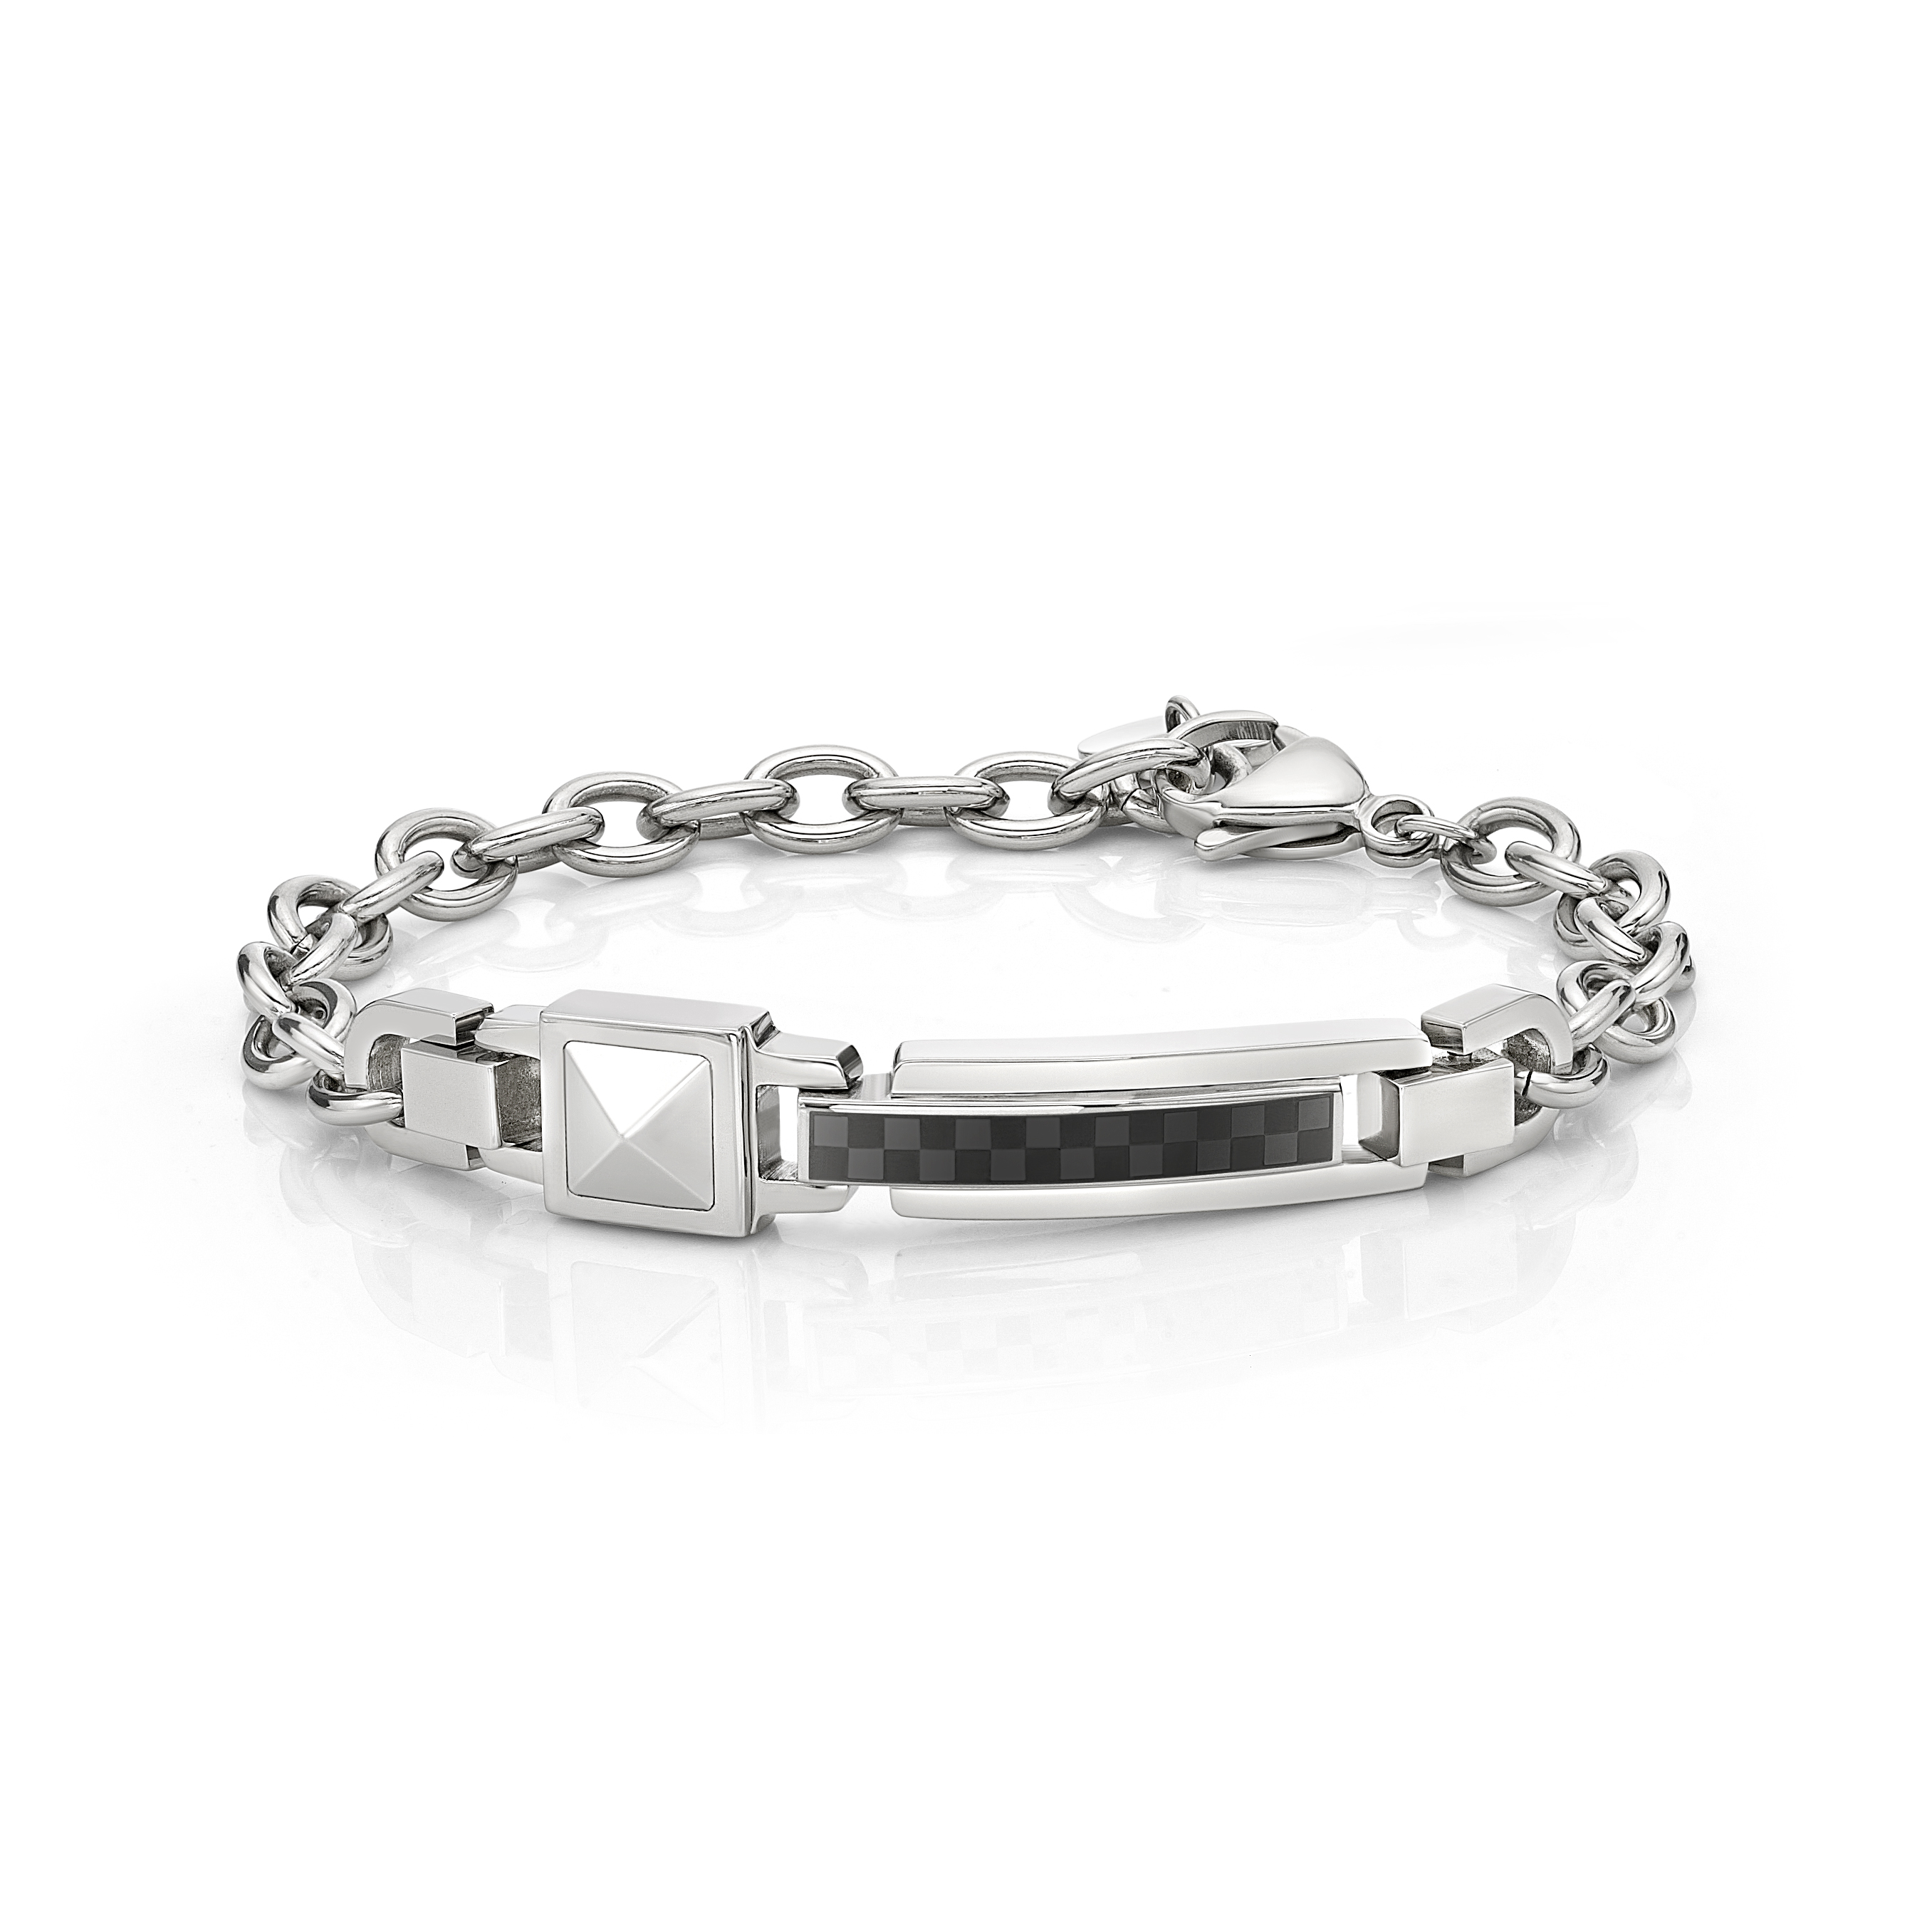 Steel Rivet Bracelet with Black square pattern